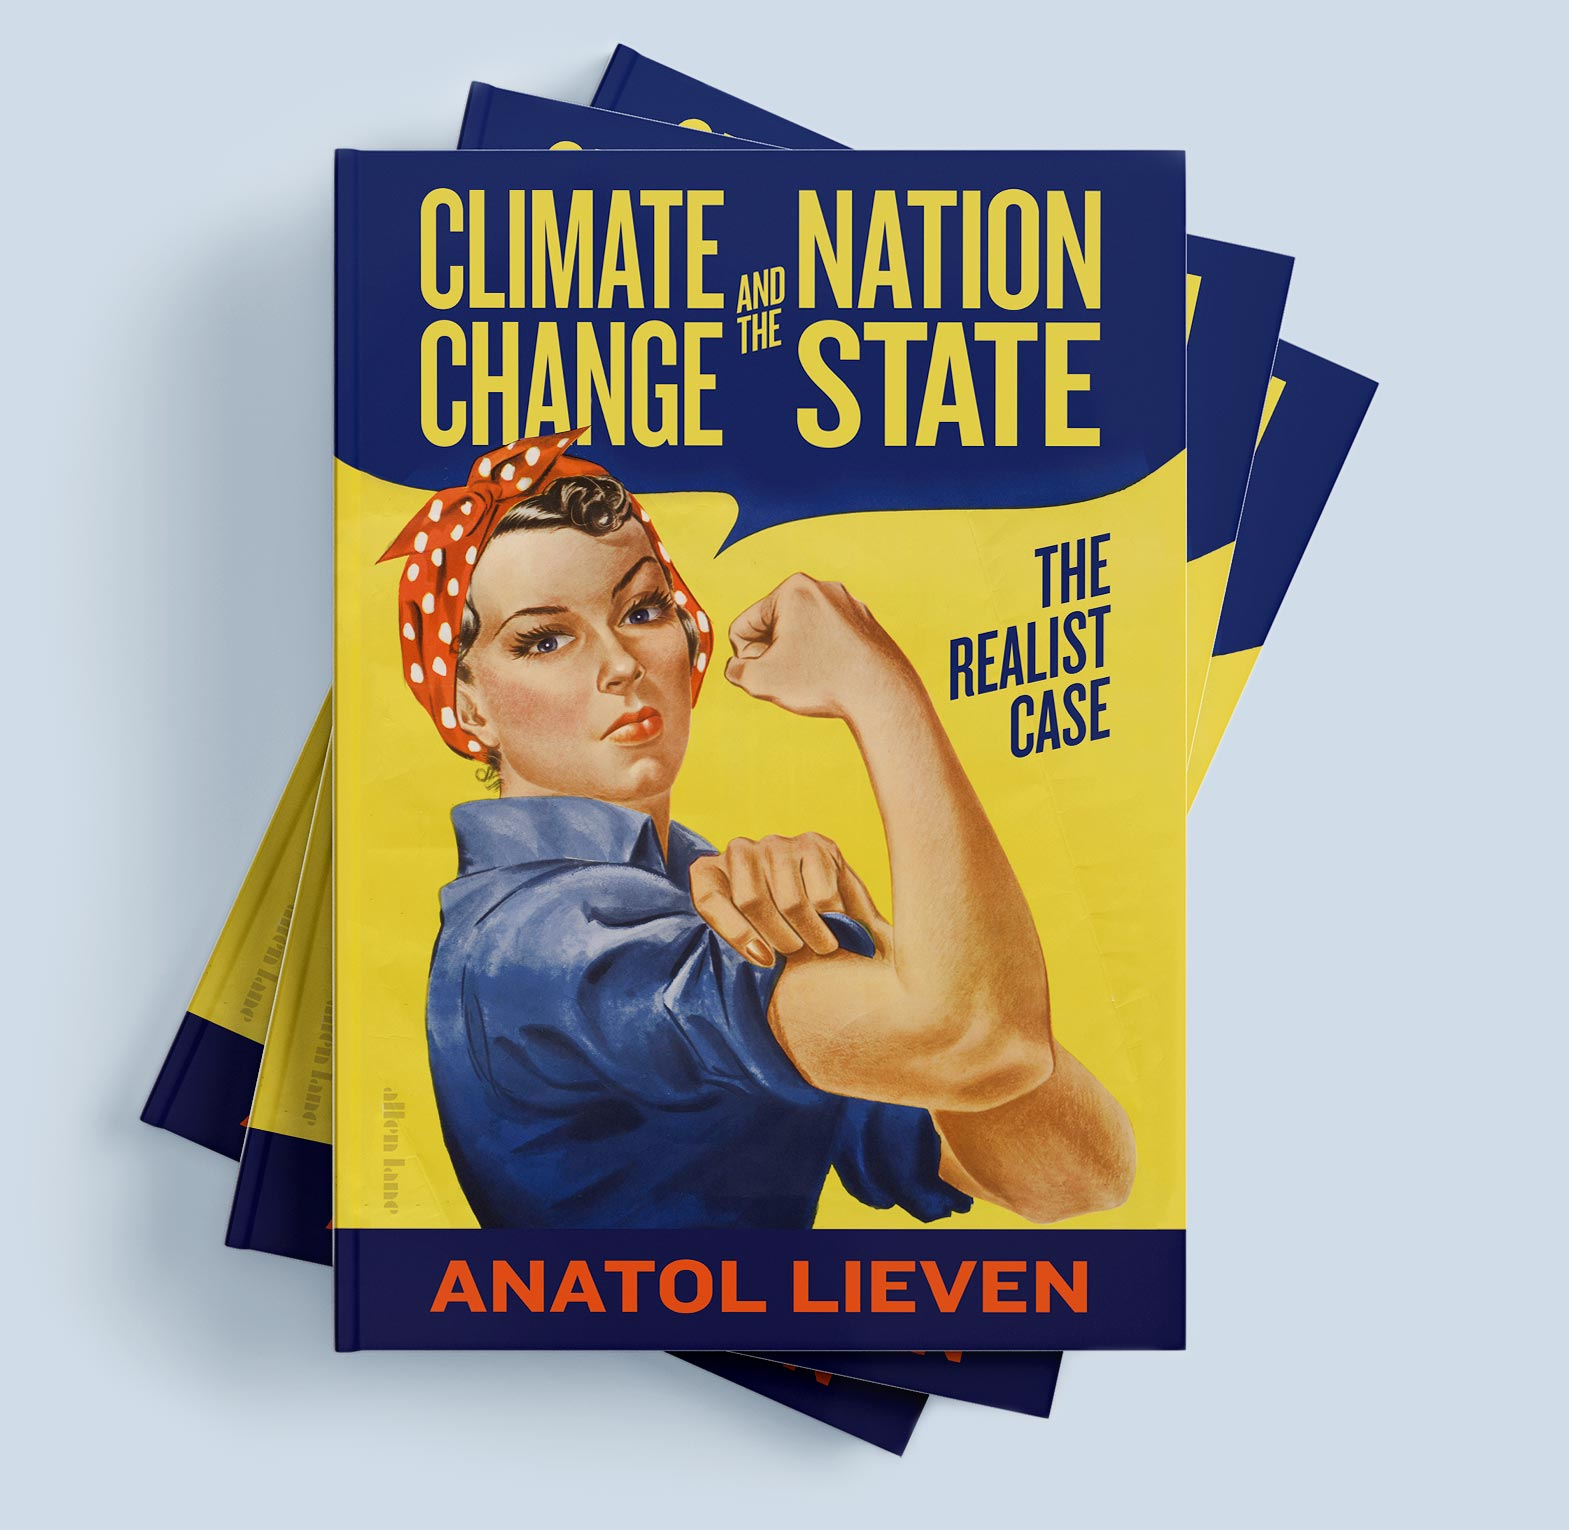 climate-change-featured-book-alt2